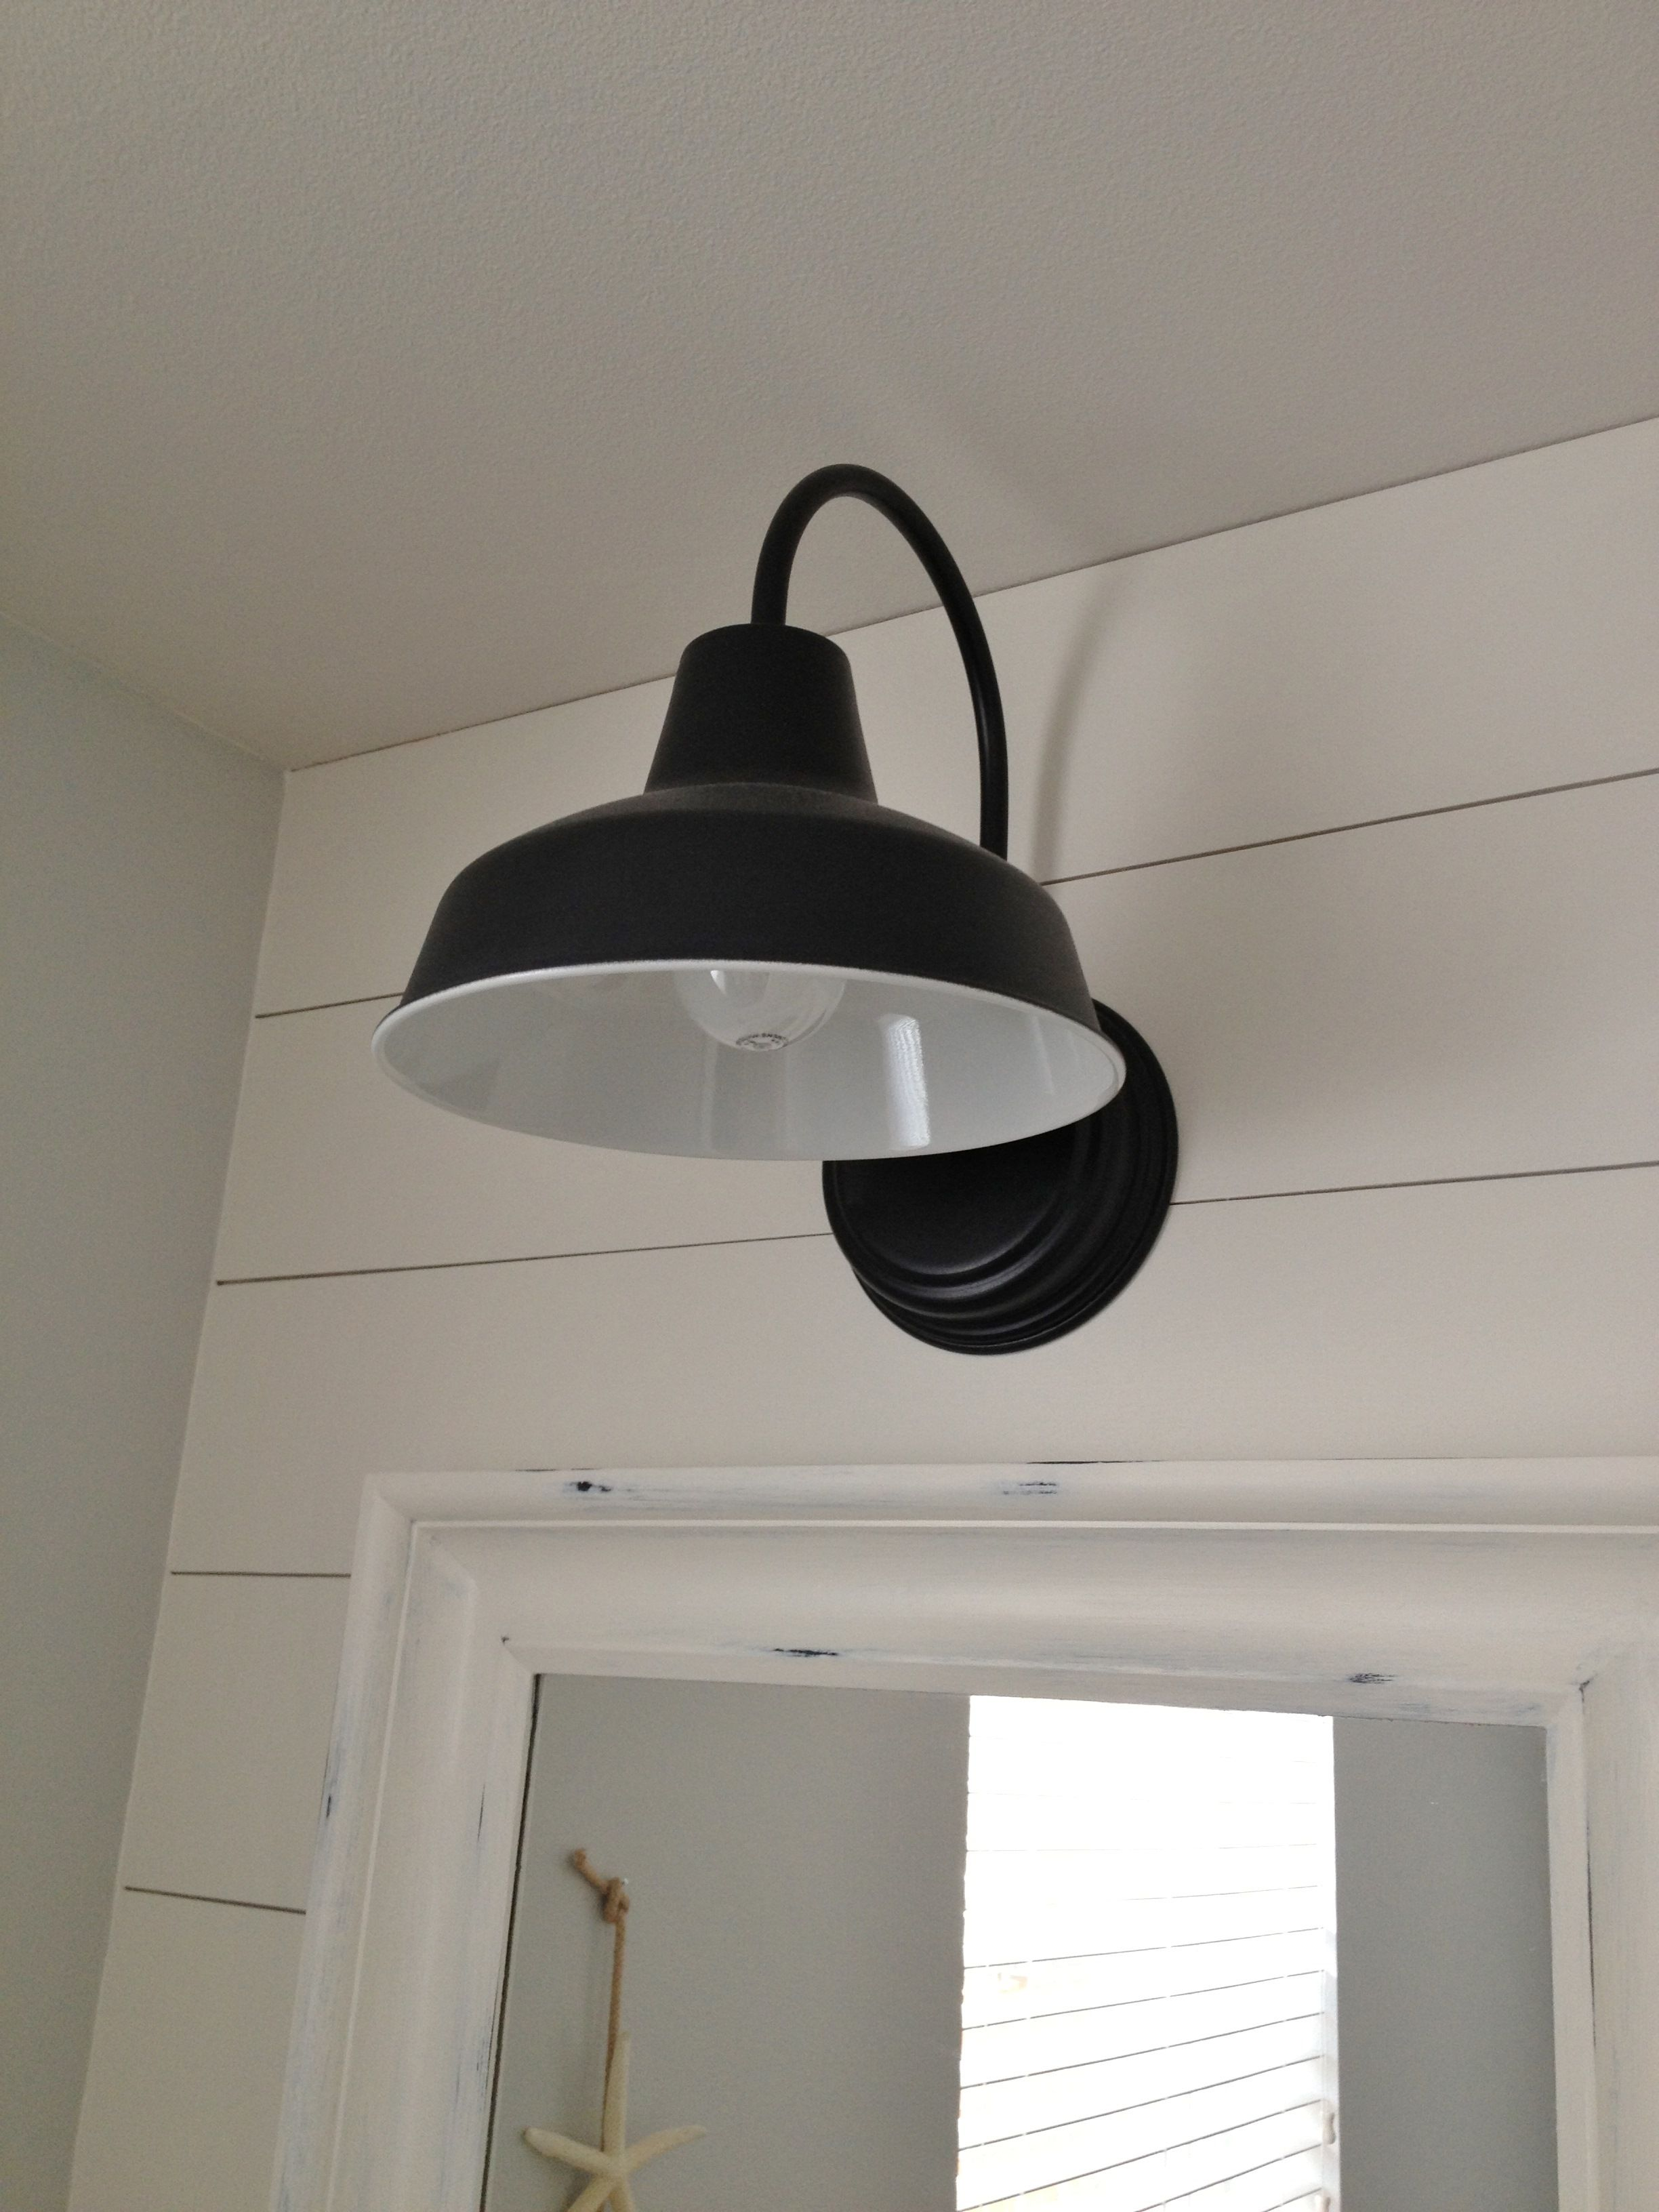 debuskphoto fixtures light lighting lights idea bathroom perfect farmhouse